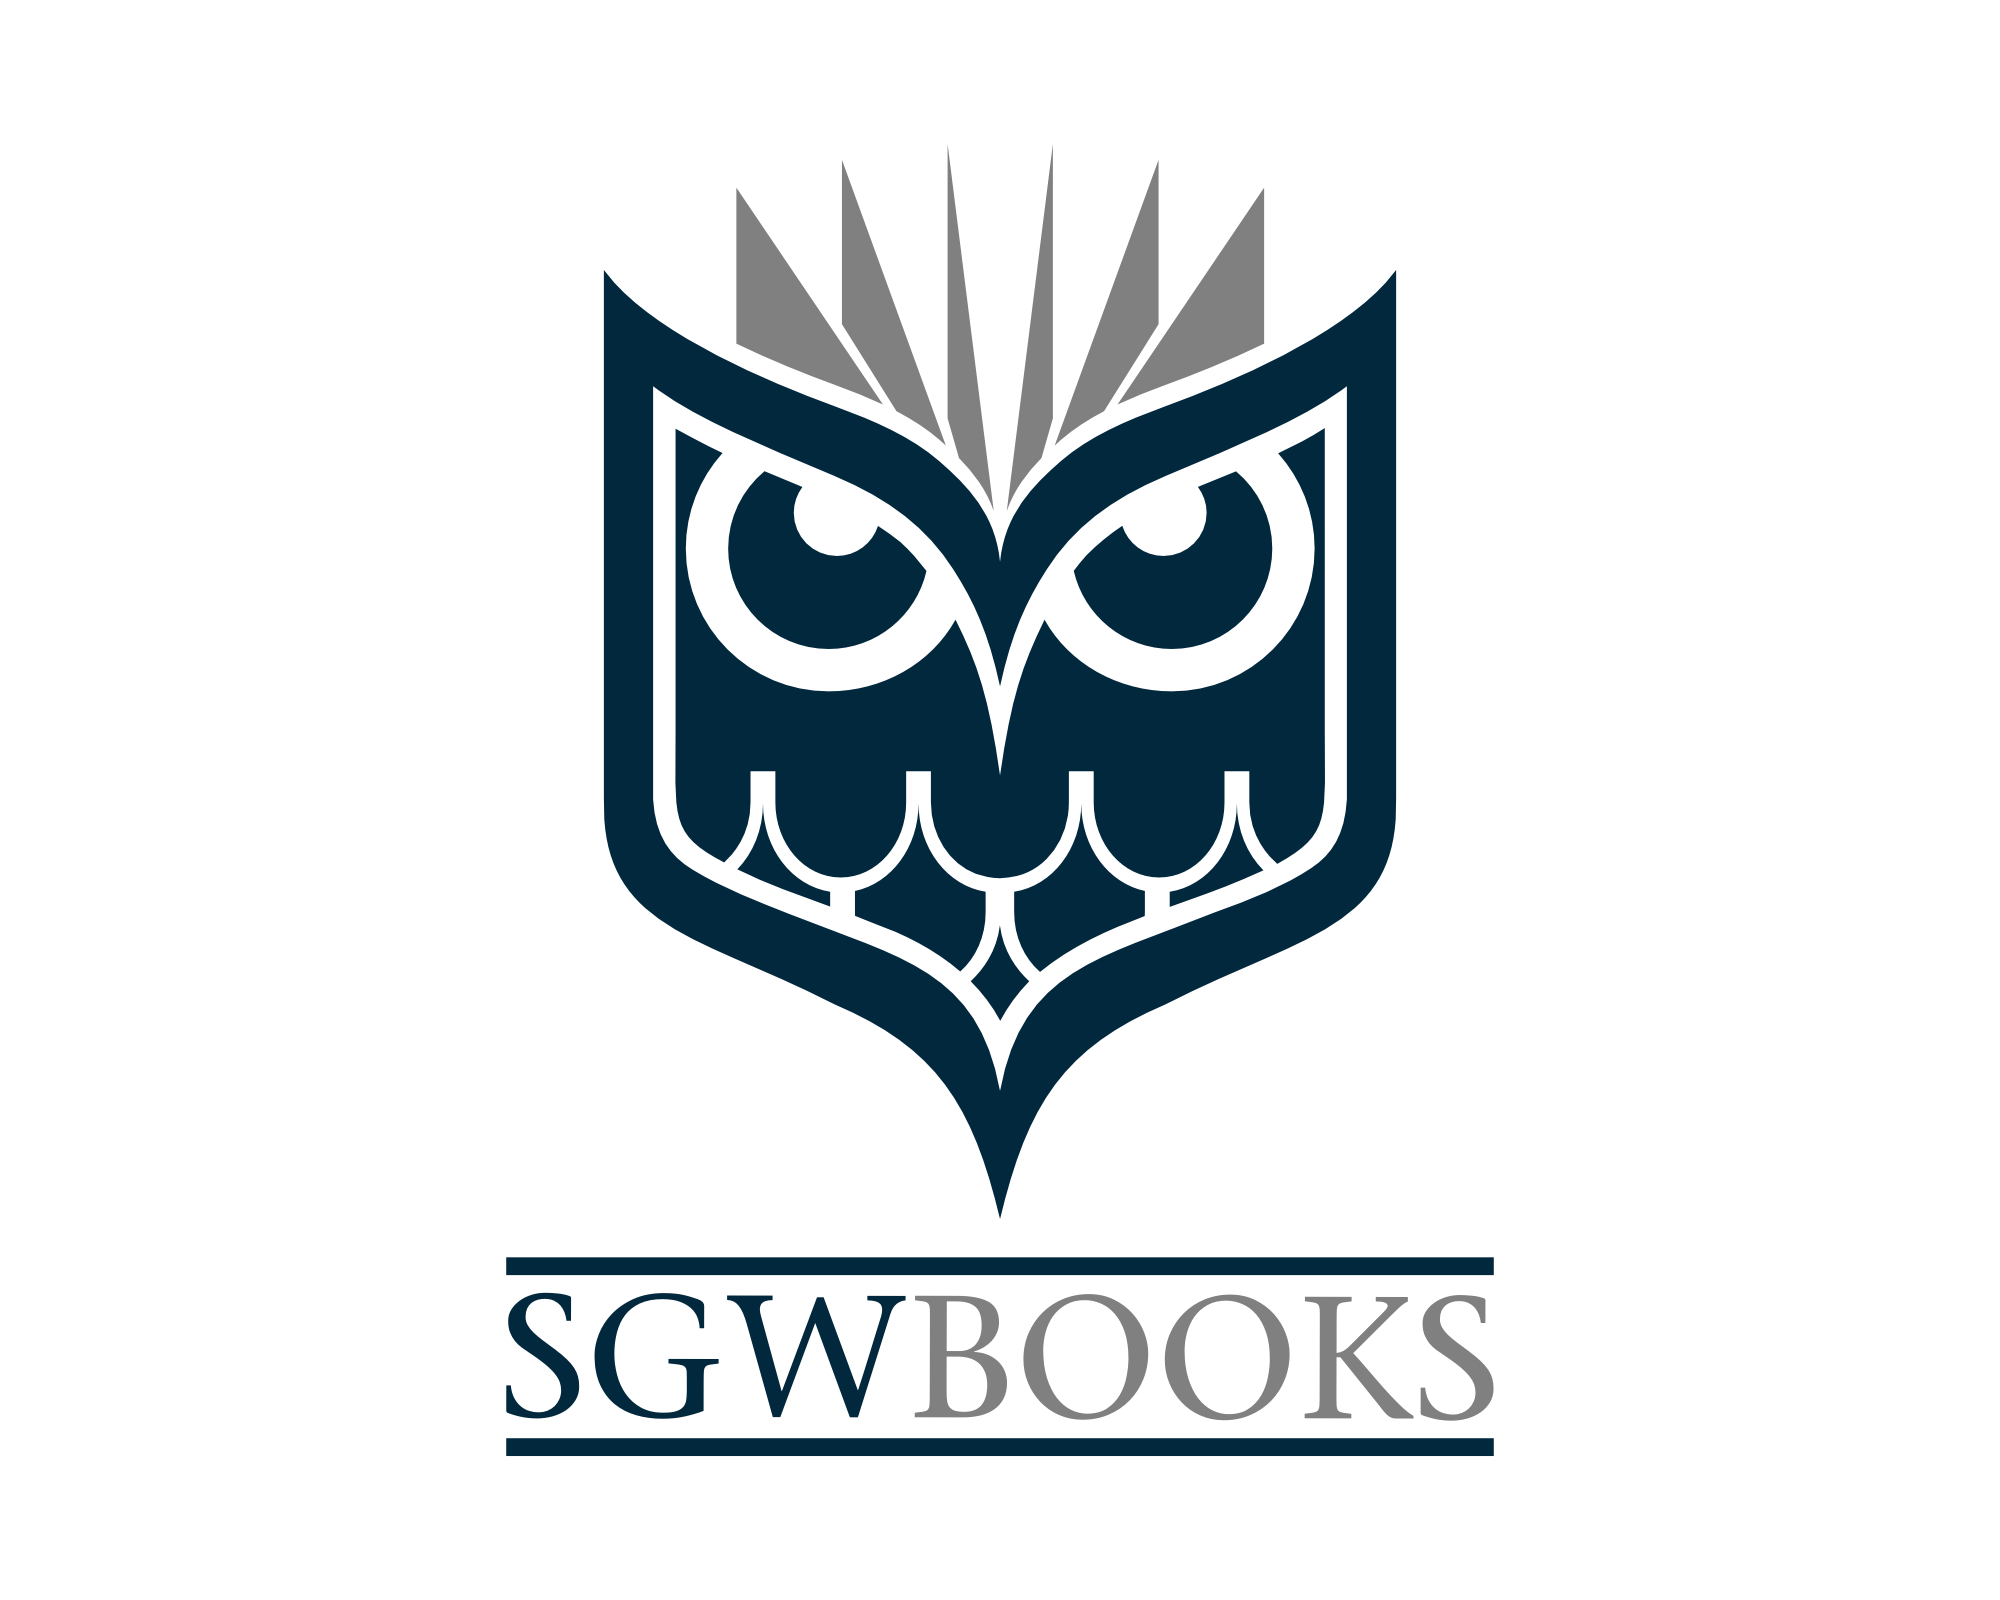 Logo Design by explogos - Entry No. 84 in the Logo Design Contest SGW Books Logo Design.